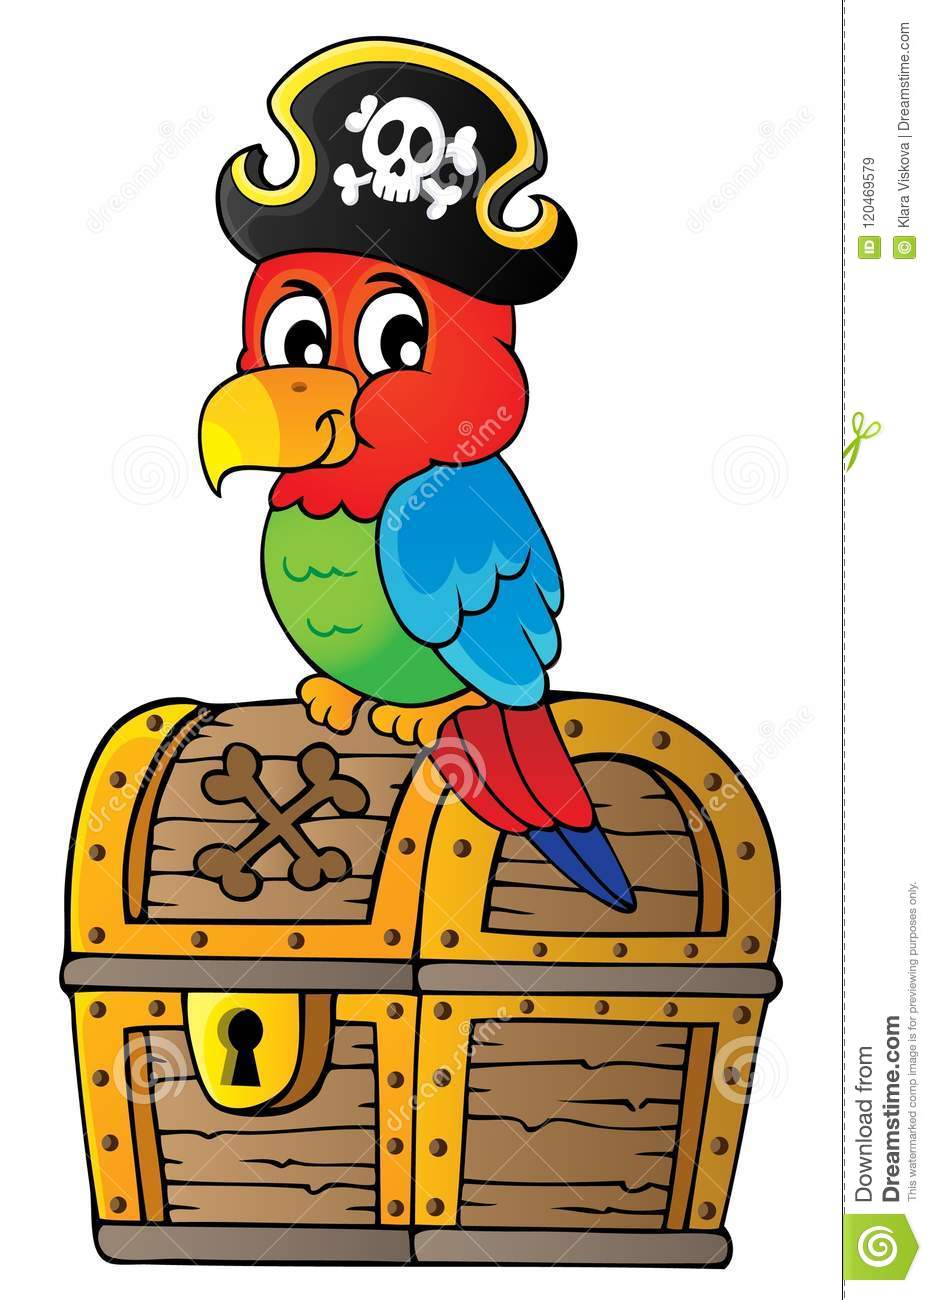 Pirate Parrot On Treasure Chest Topic 1 Stock Vector ...